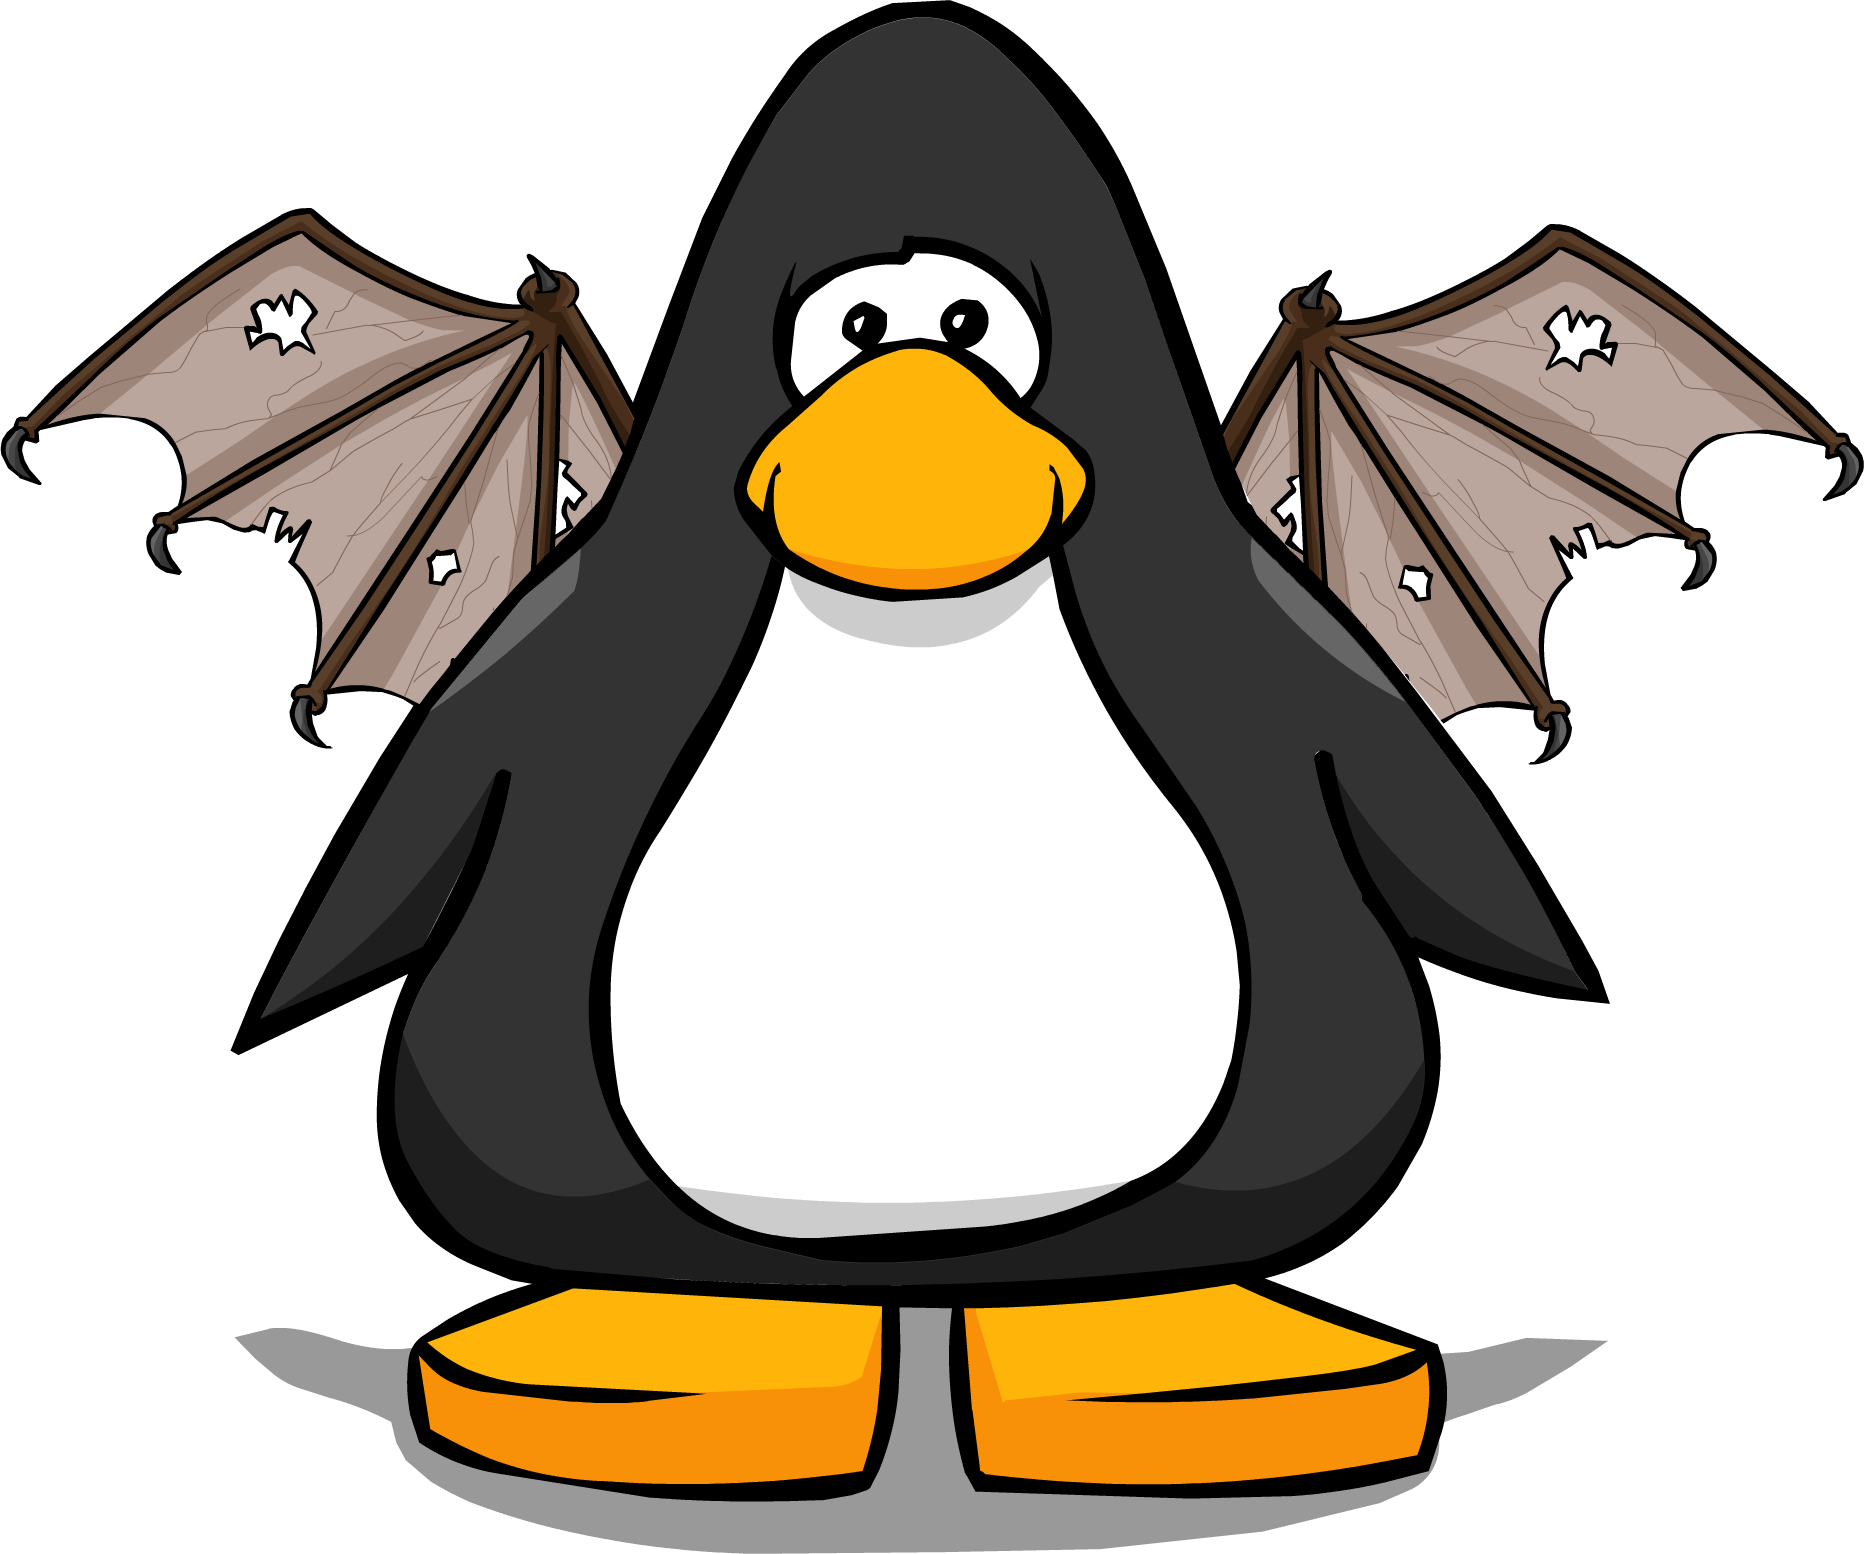 Wing clipart animal wing. Image brown bat wings